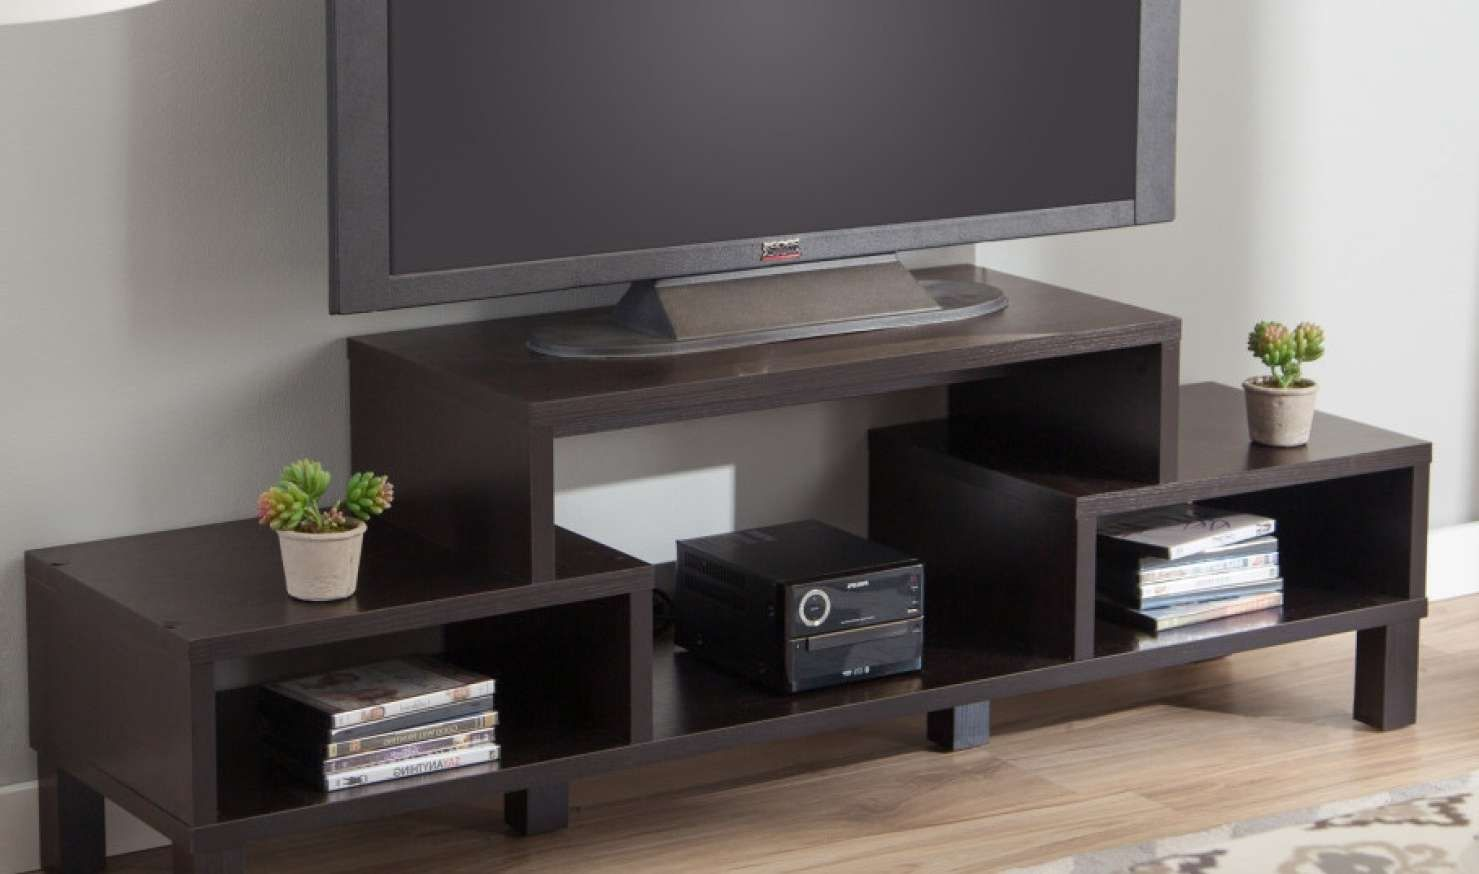 Hunting For The Good Trendy Tv Stands So This Is Really Proper